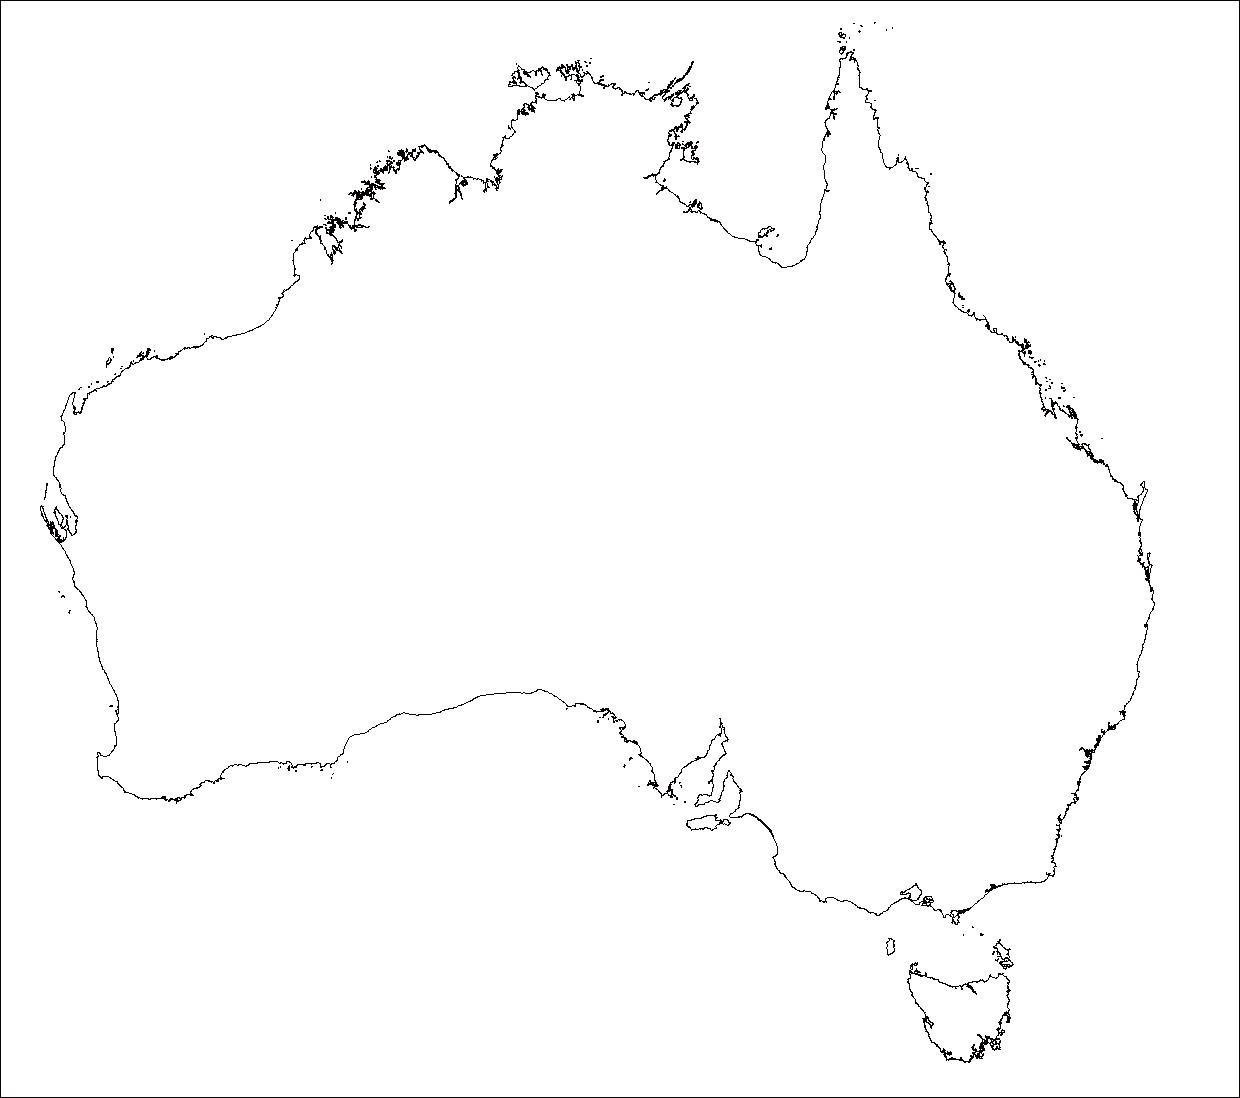 Blank map of Australia - Australia blank map (Australia and ... on blank map of macau, blank map of dubai, blank map of la paz, blank map of mexico city, blank map of oahu, blank map of singapore, blank map of new spain, blank map of bahamas, blank map of abaco, blank map of boston, blank map of charleston, blank map of the southeast, blank map of paris, blank map of sydney, blank map of panama canal, blank map of new york city, blank map of hong kong, blank map of buenos aires, blank map of athens, blank map of los angeles,